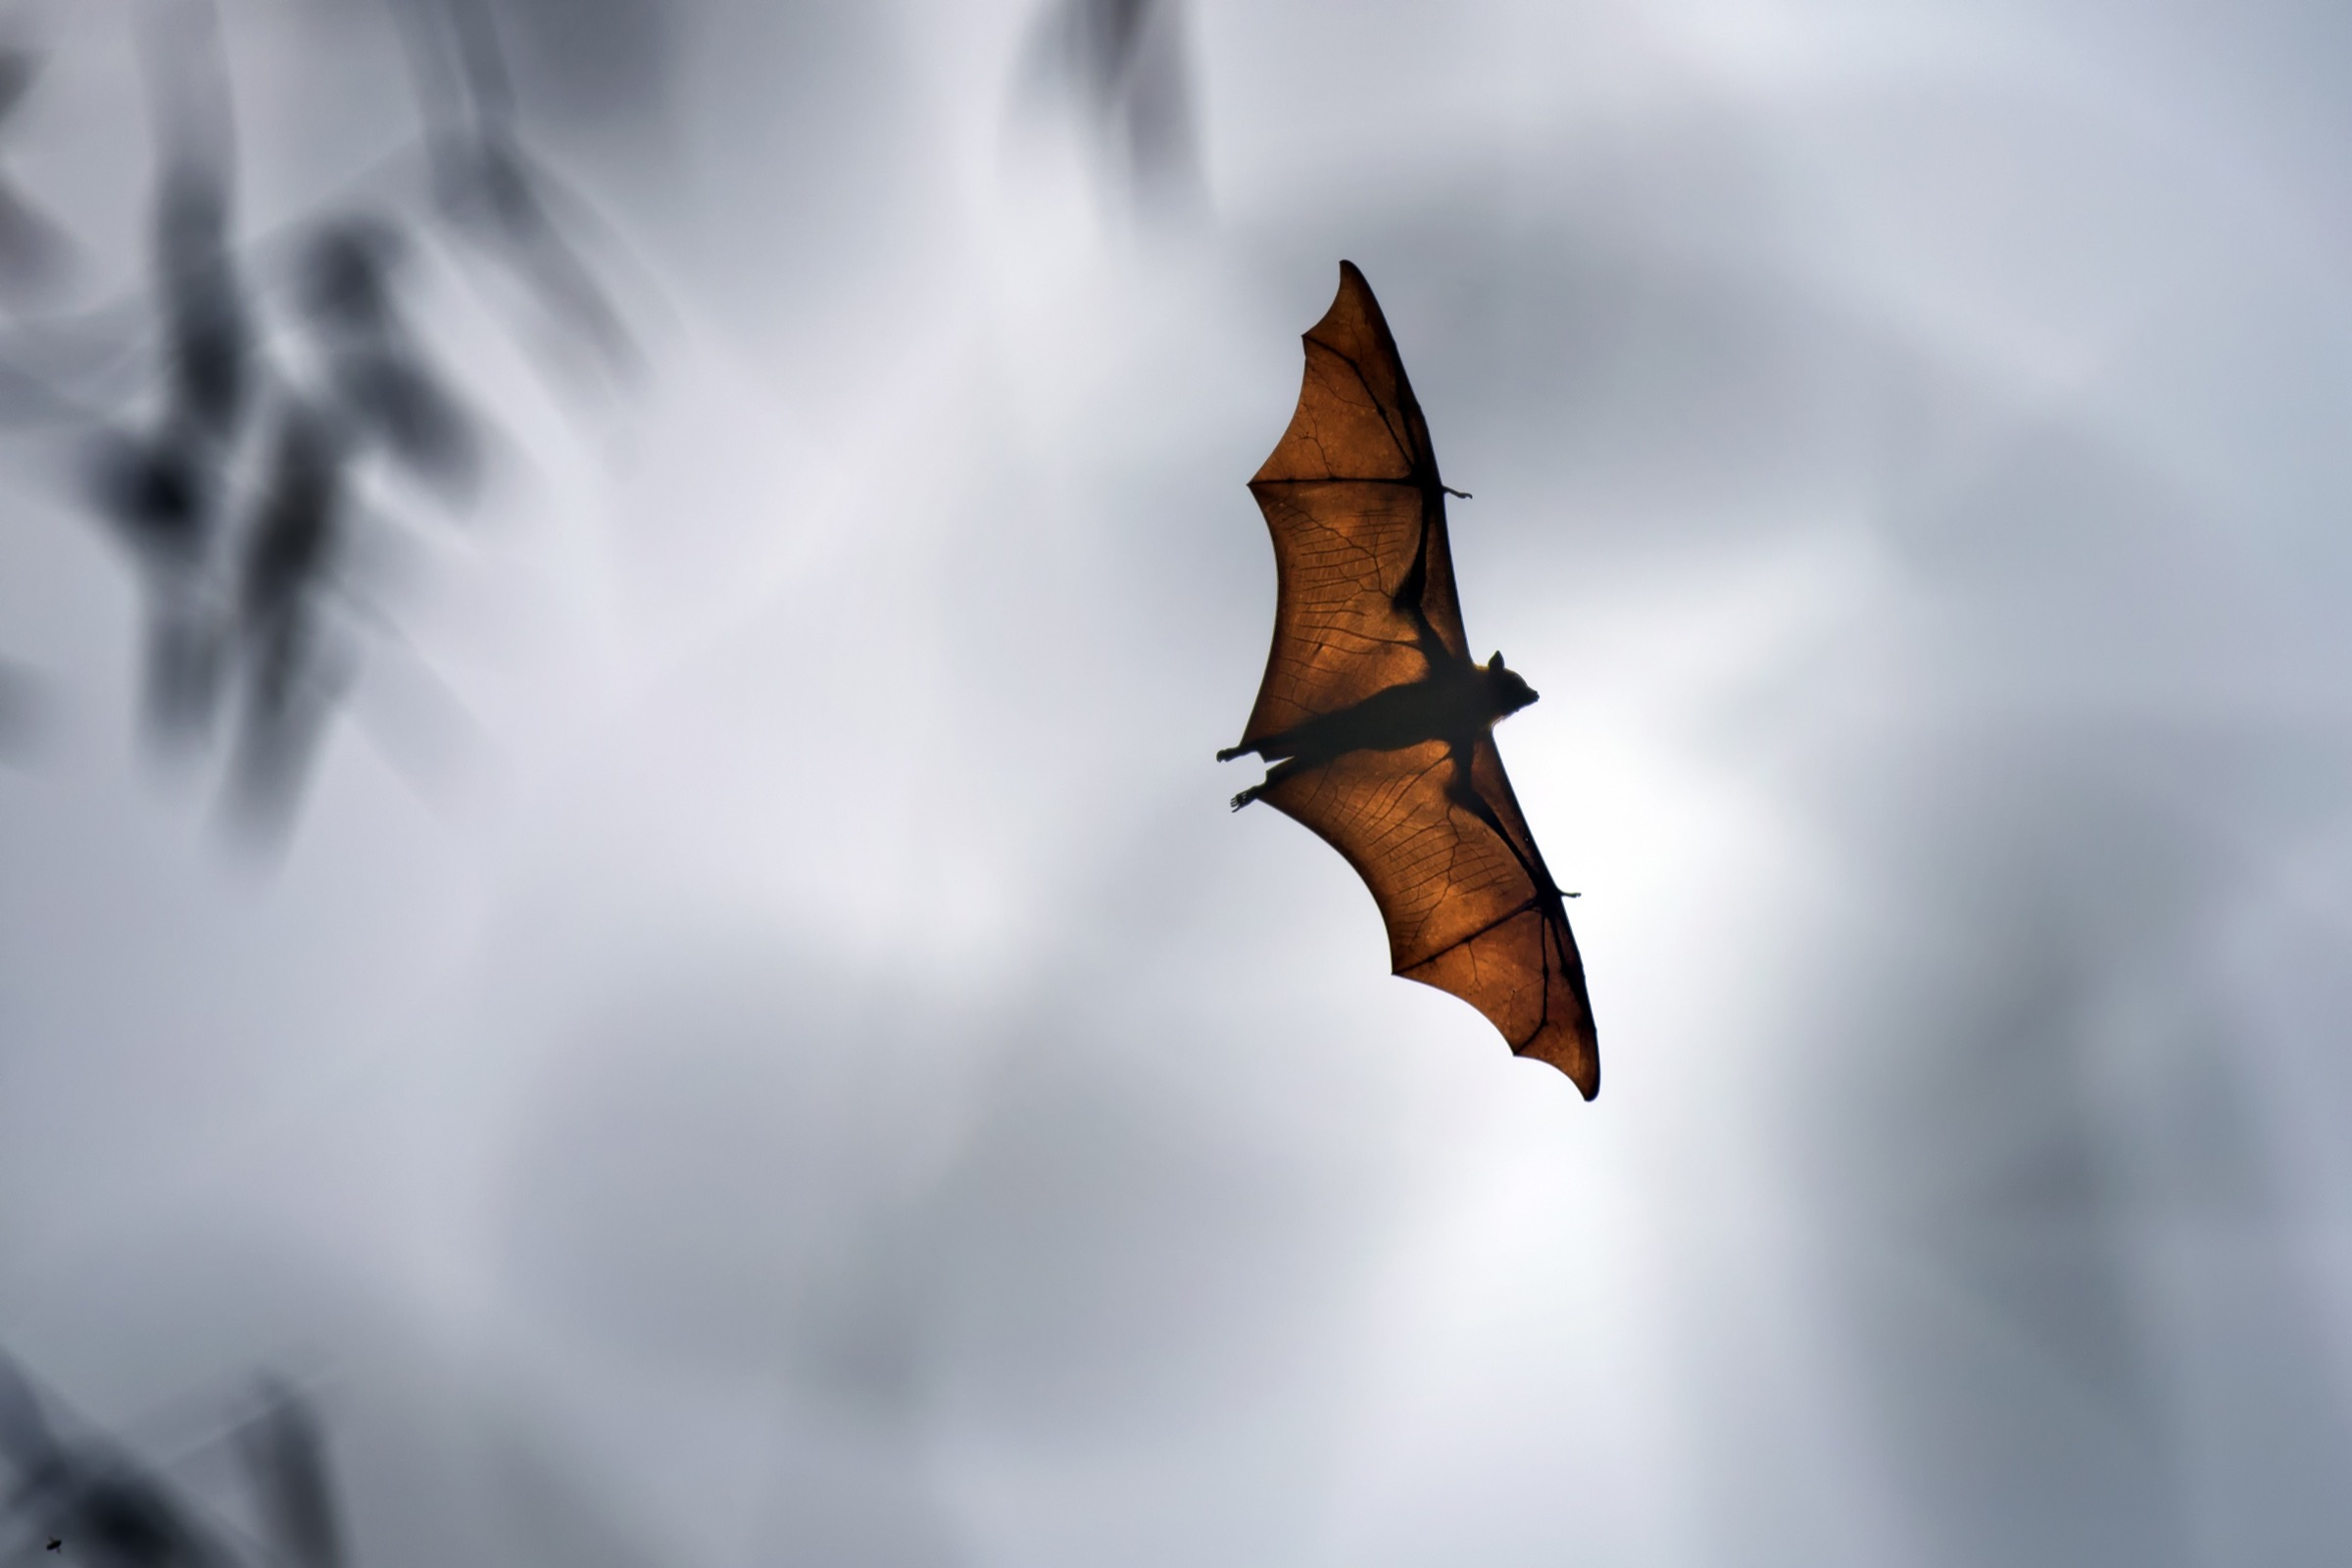 An Indian flying fox passes over a village near northern Bangladesh's Rangpur City looking for an unoccupied spot to roost for the day. Photograph by A.M. Ahad